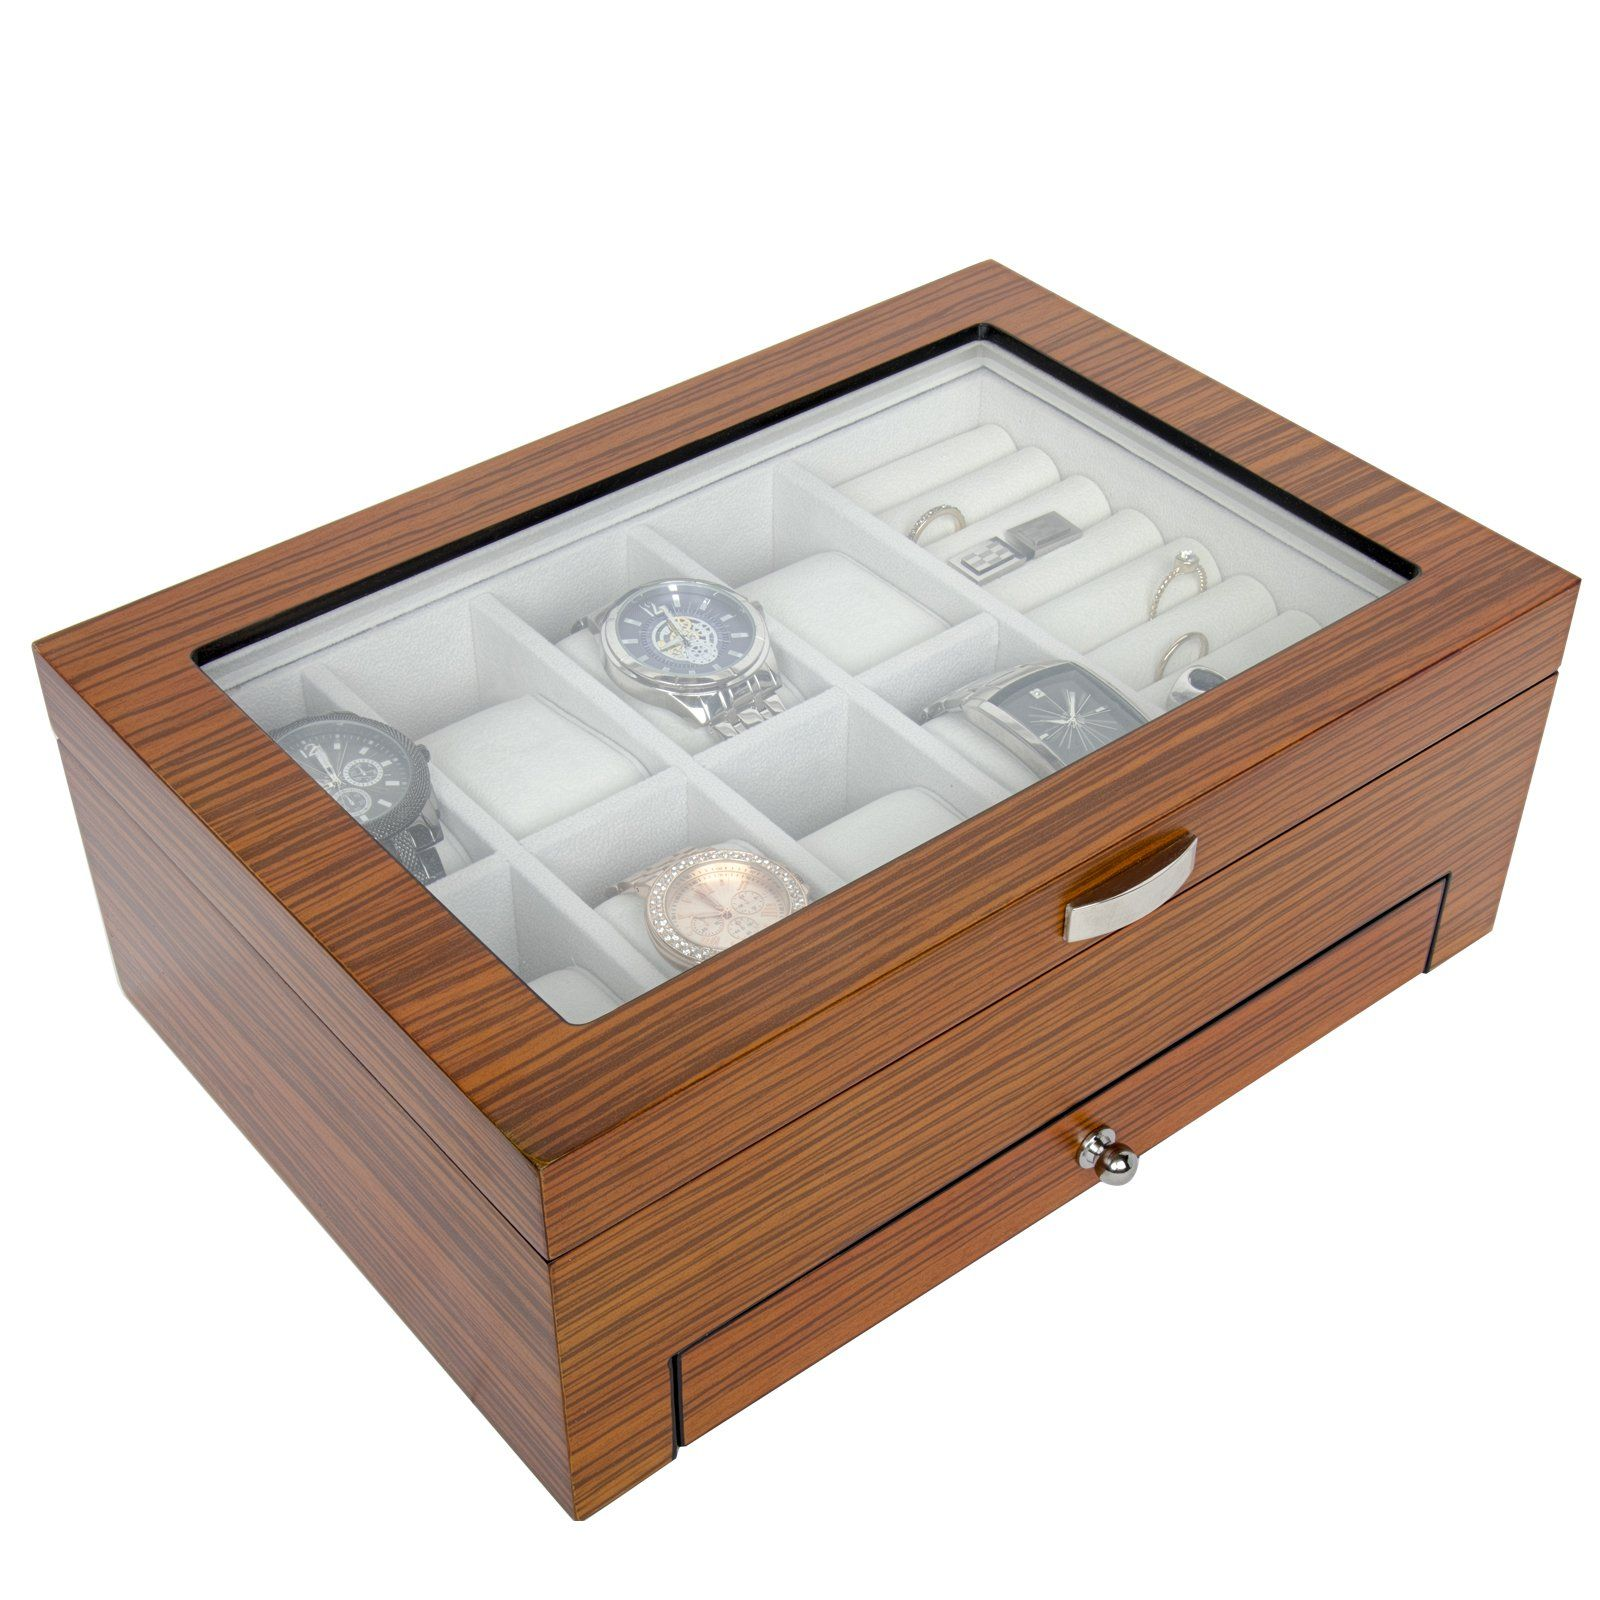 Top Quality Wood watch Storage Box Organizer with Valet Drawer  sc 1 st  Pinterest & Top Quality Wood watch Storage Box Organizer with Valet Drawer ...